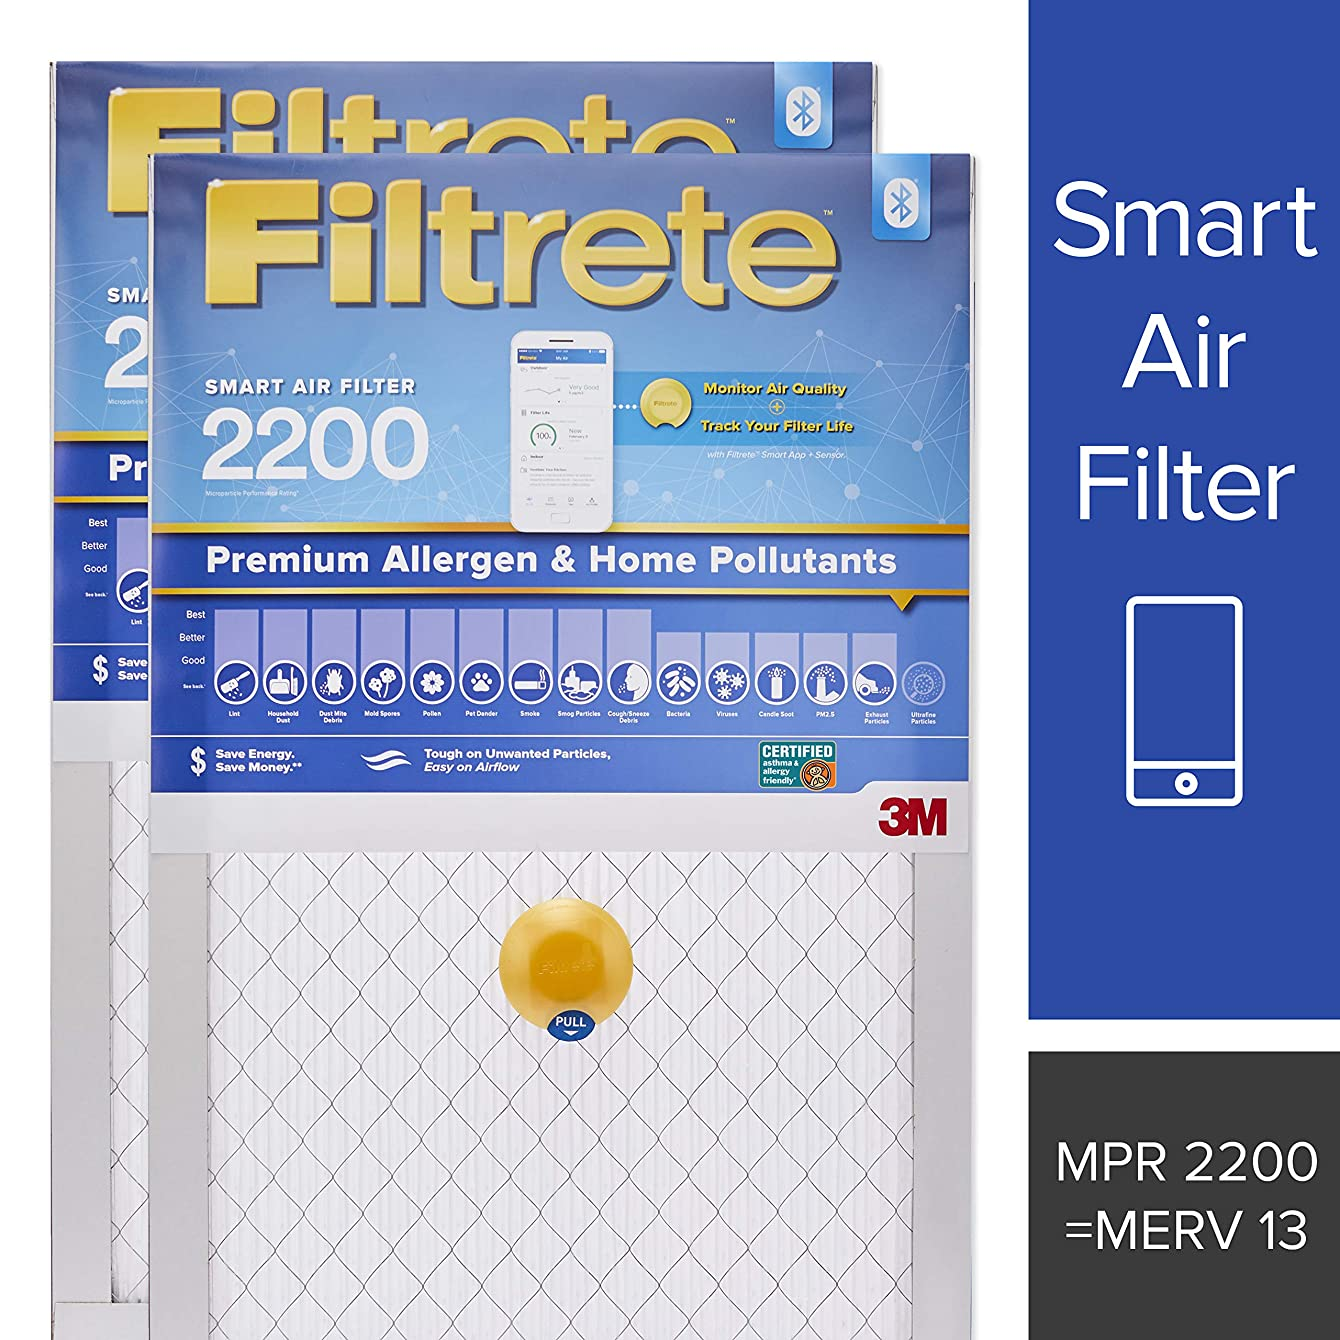 Filtrete 16x25x1 Smart Air Filter, MPR 2200, Premium Allergen & Home Pollutants AC Furnace Air Filter, 2-Pack tgrszufitprcx83